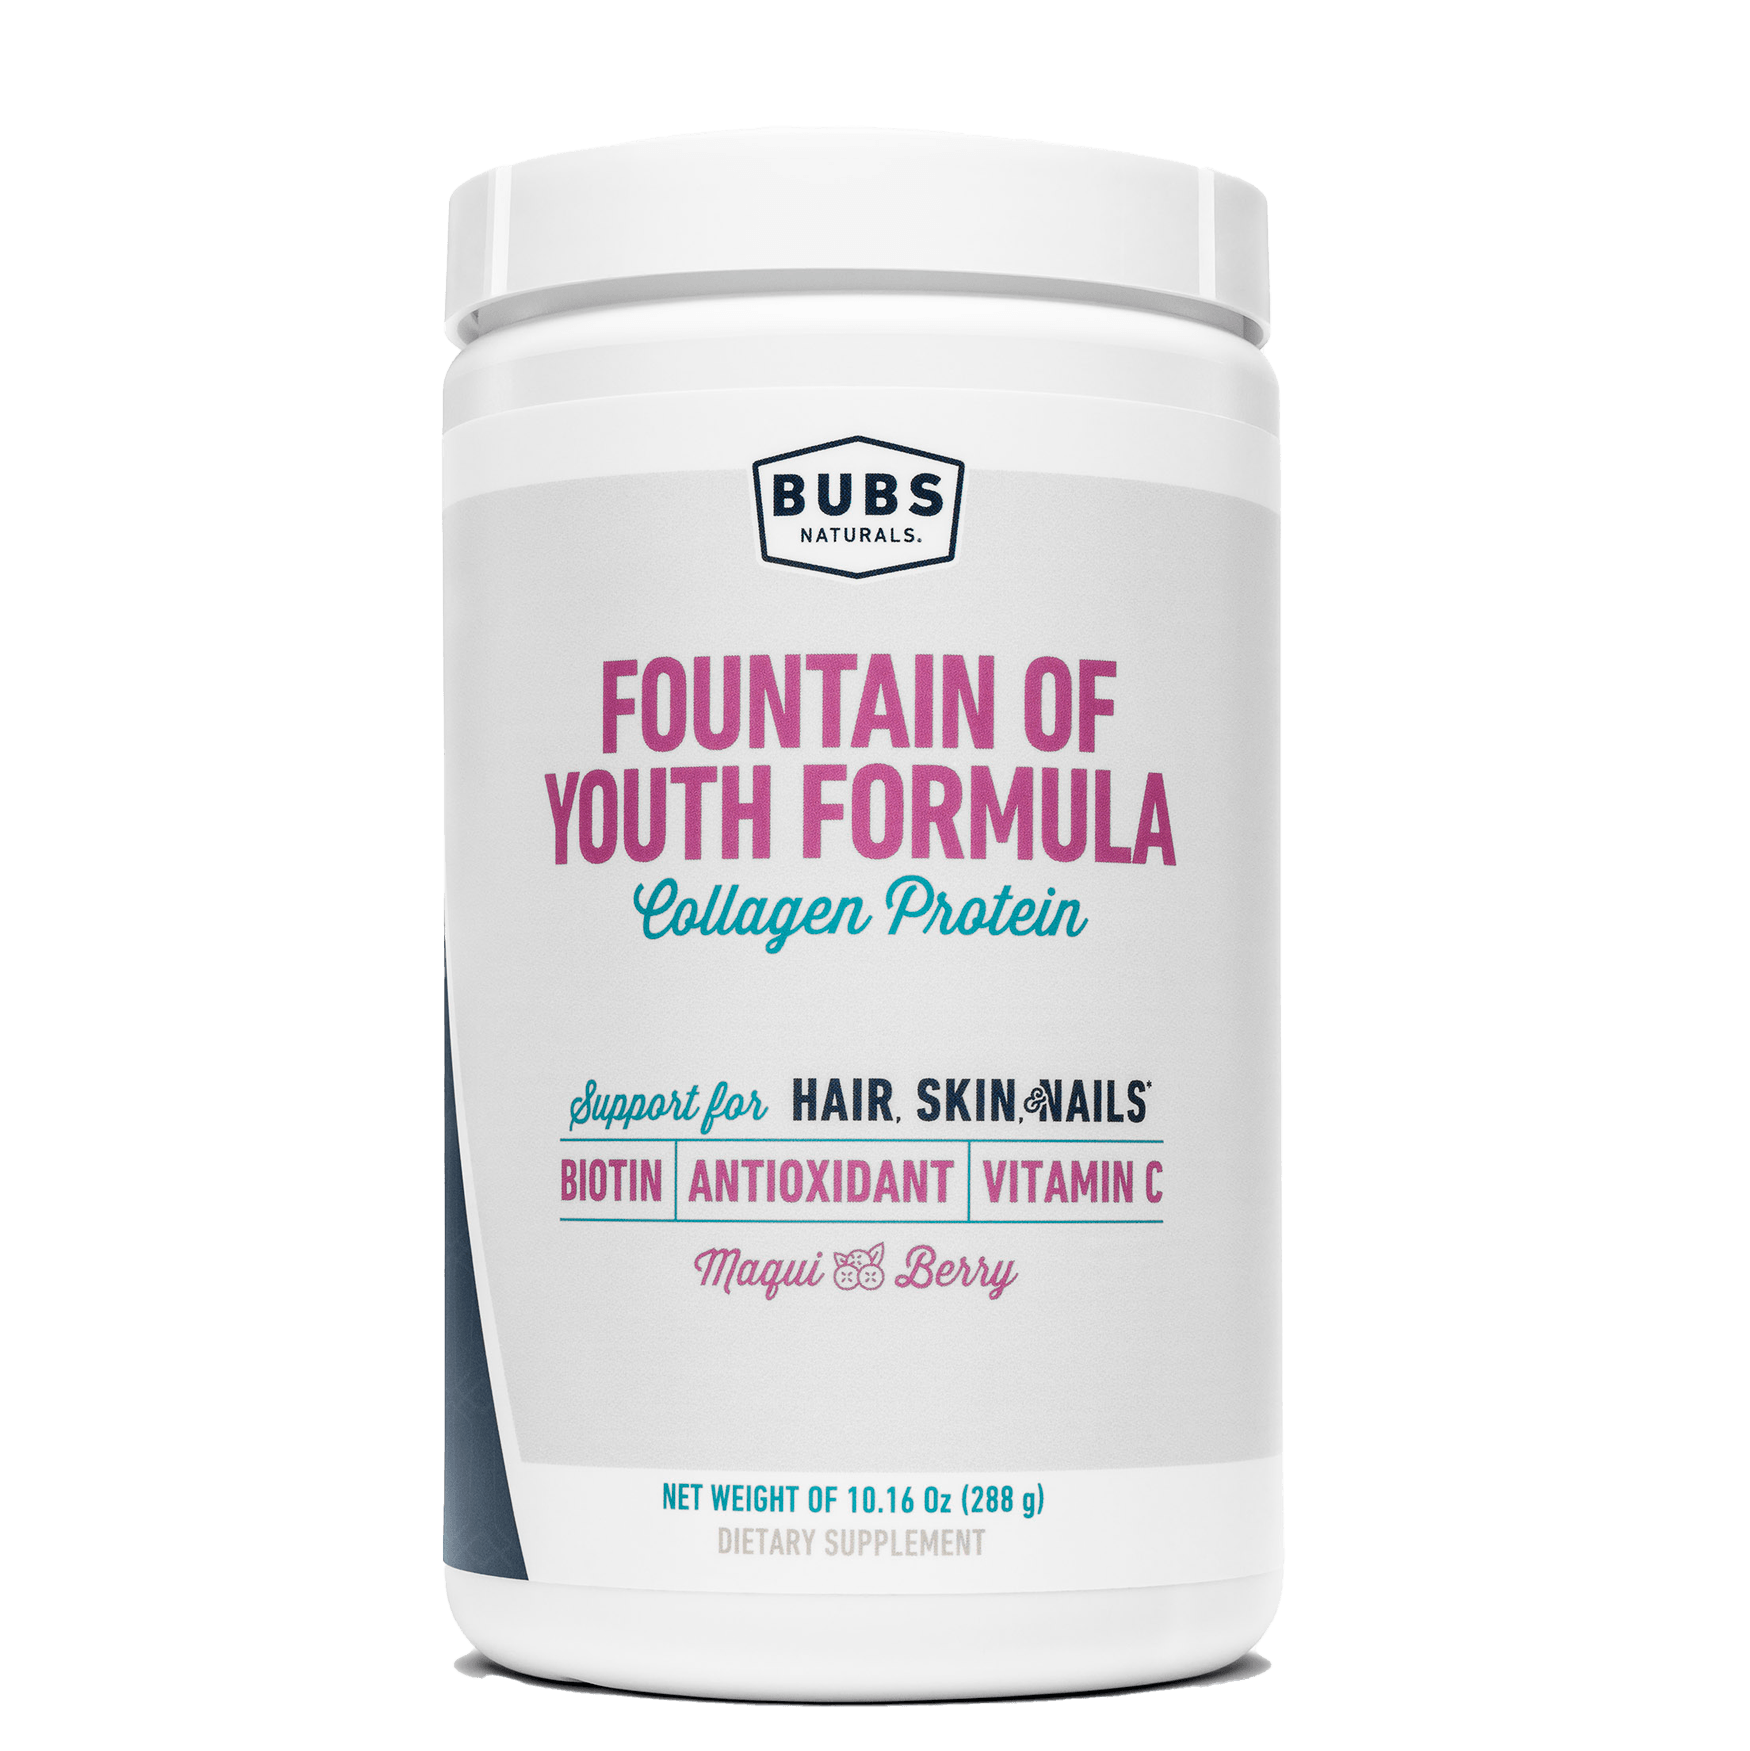 BUBS Naturals Fountain of Youth Formula Collagen Protein 10.16oz Container - Support for Hair, Skin & Nails